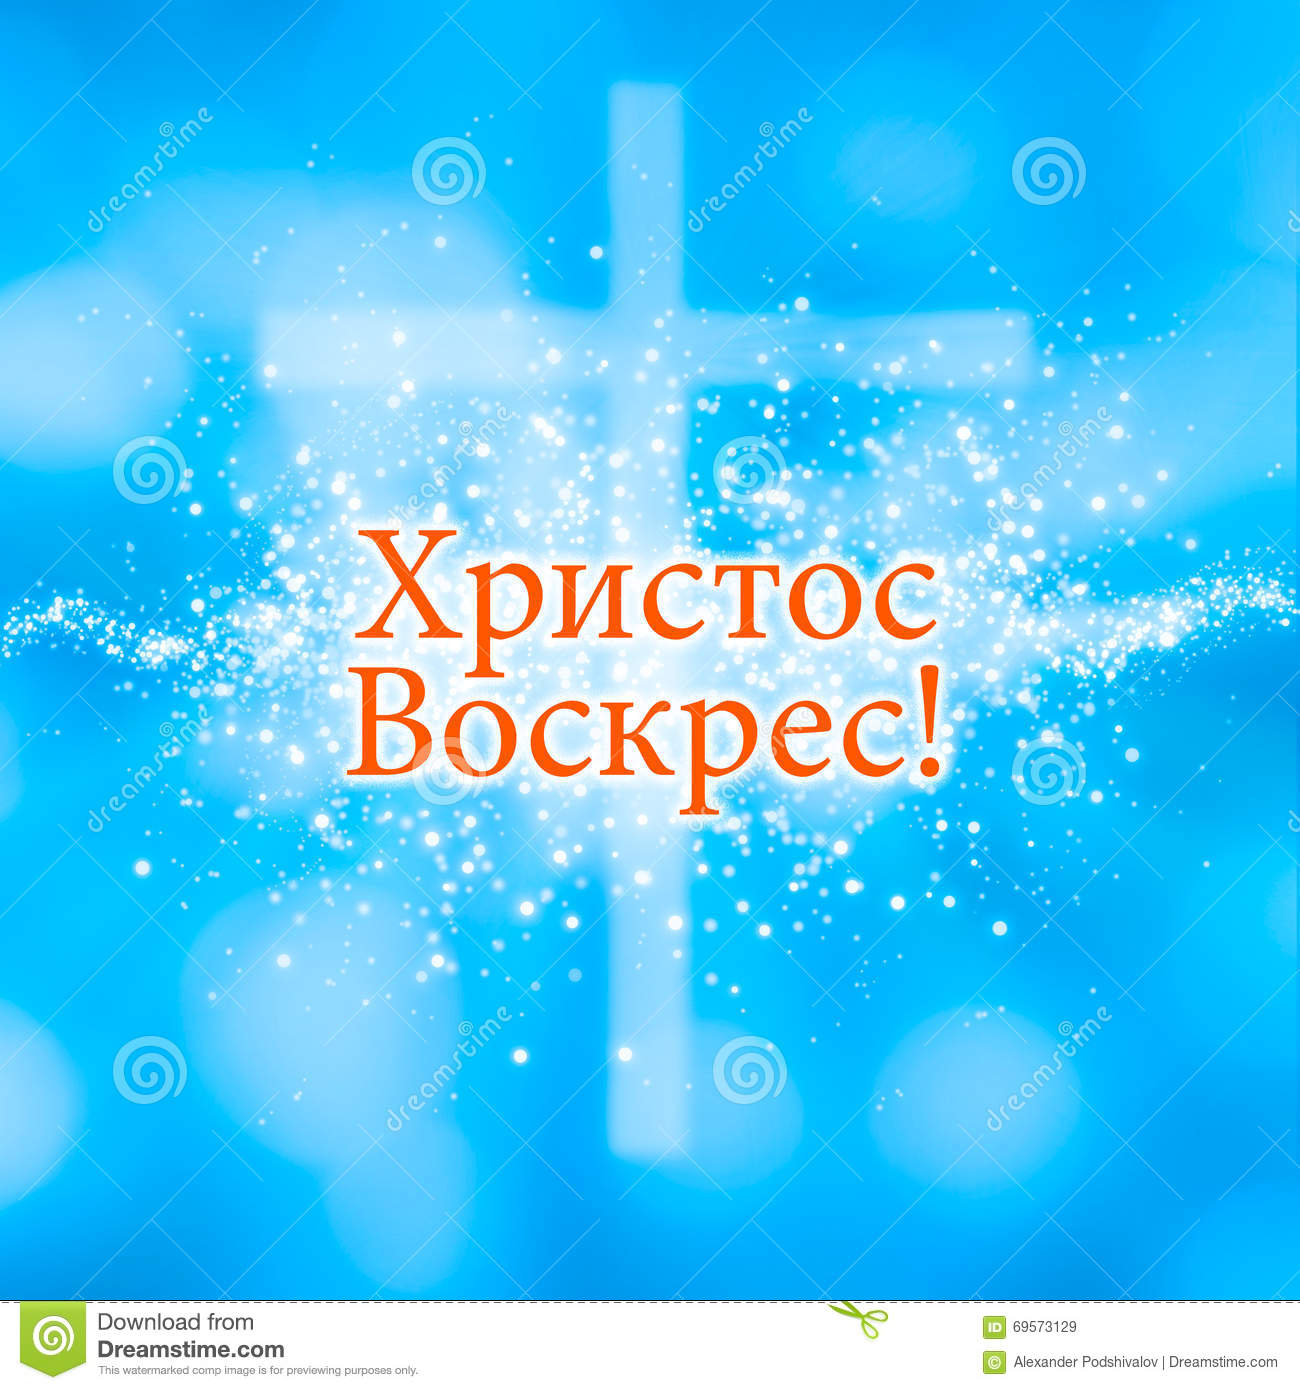 Russian Easter Greeting Merry Christmas And Happy New Year 2018